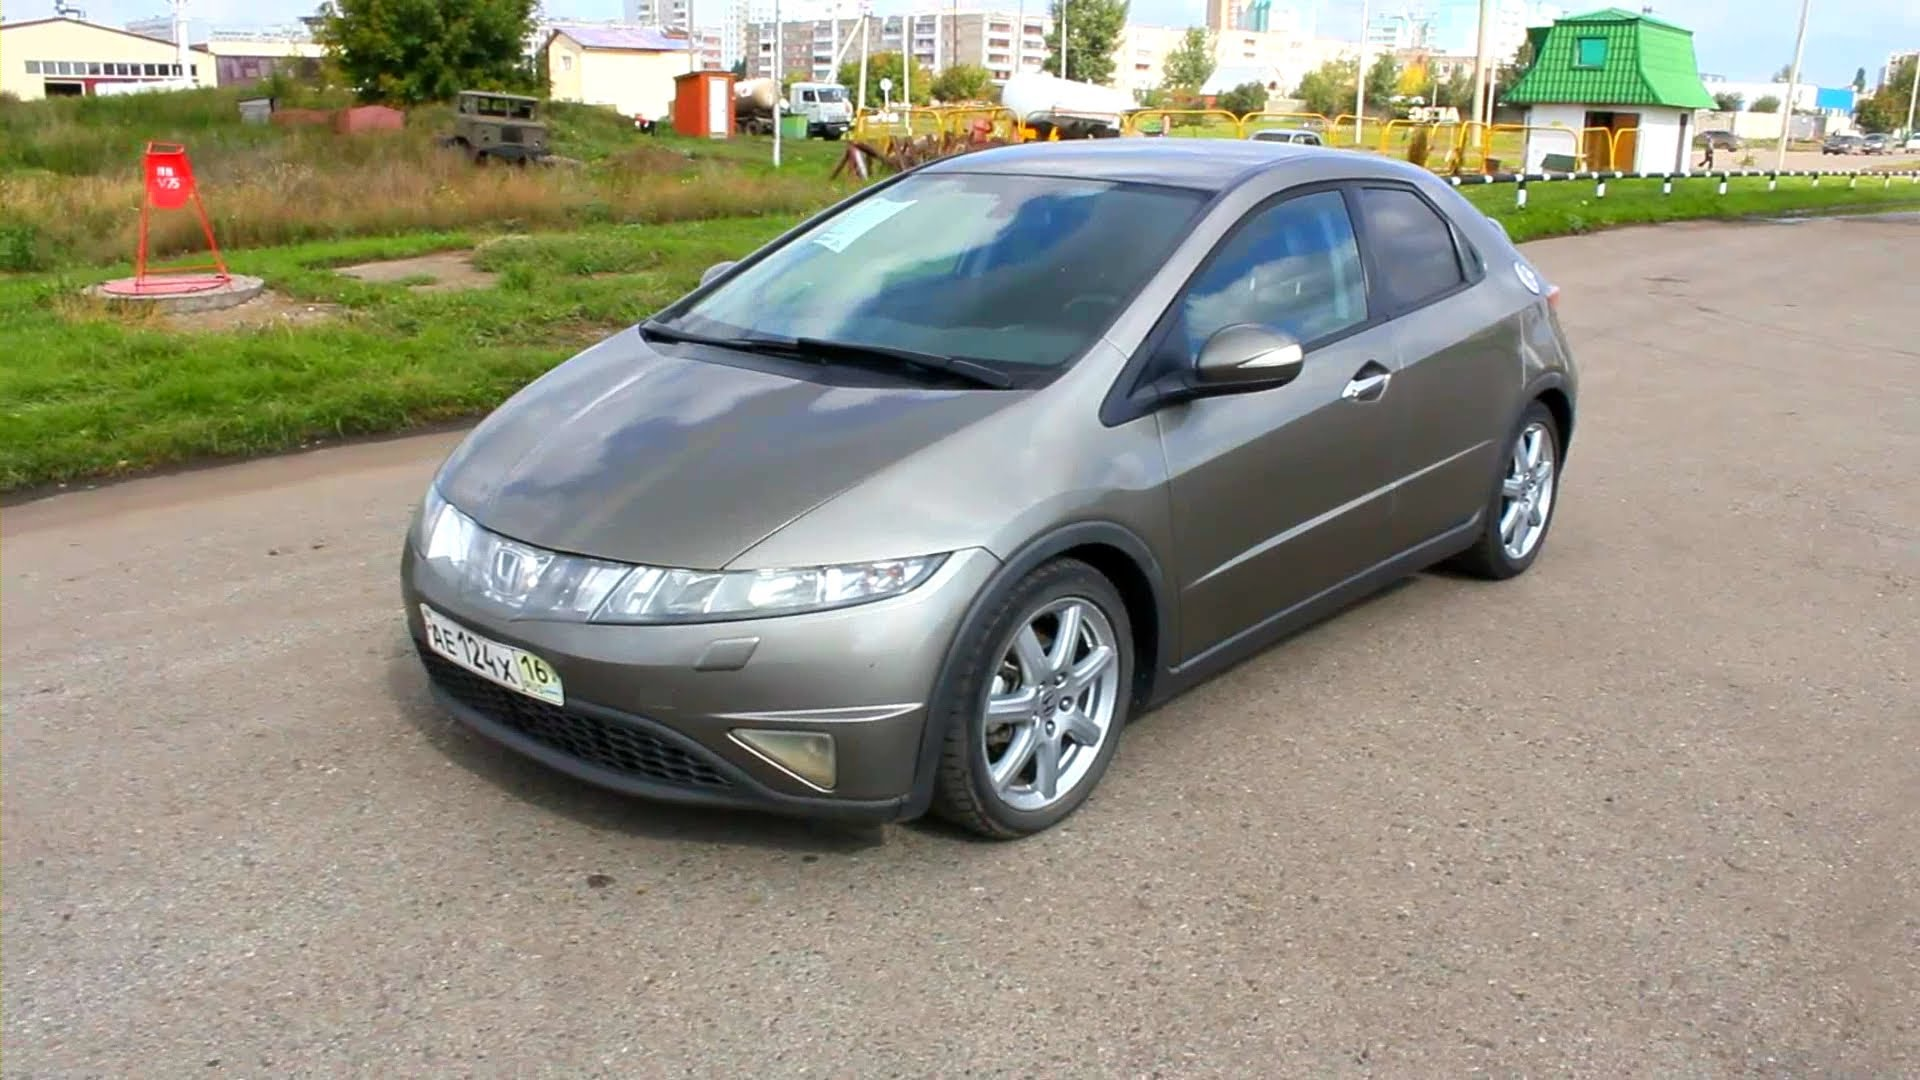 Honda Civic Coupe 2006 Specs Pictures Si Fuse Box